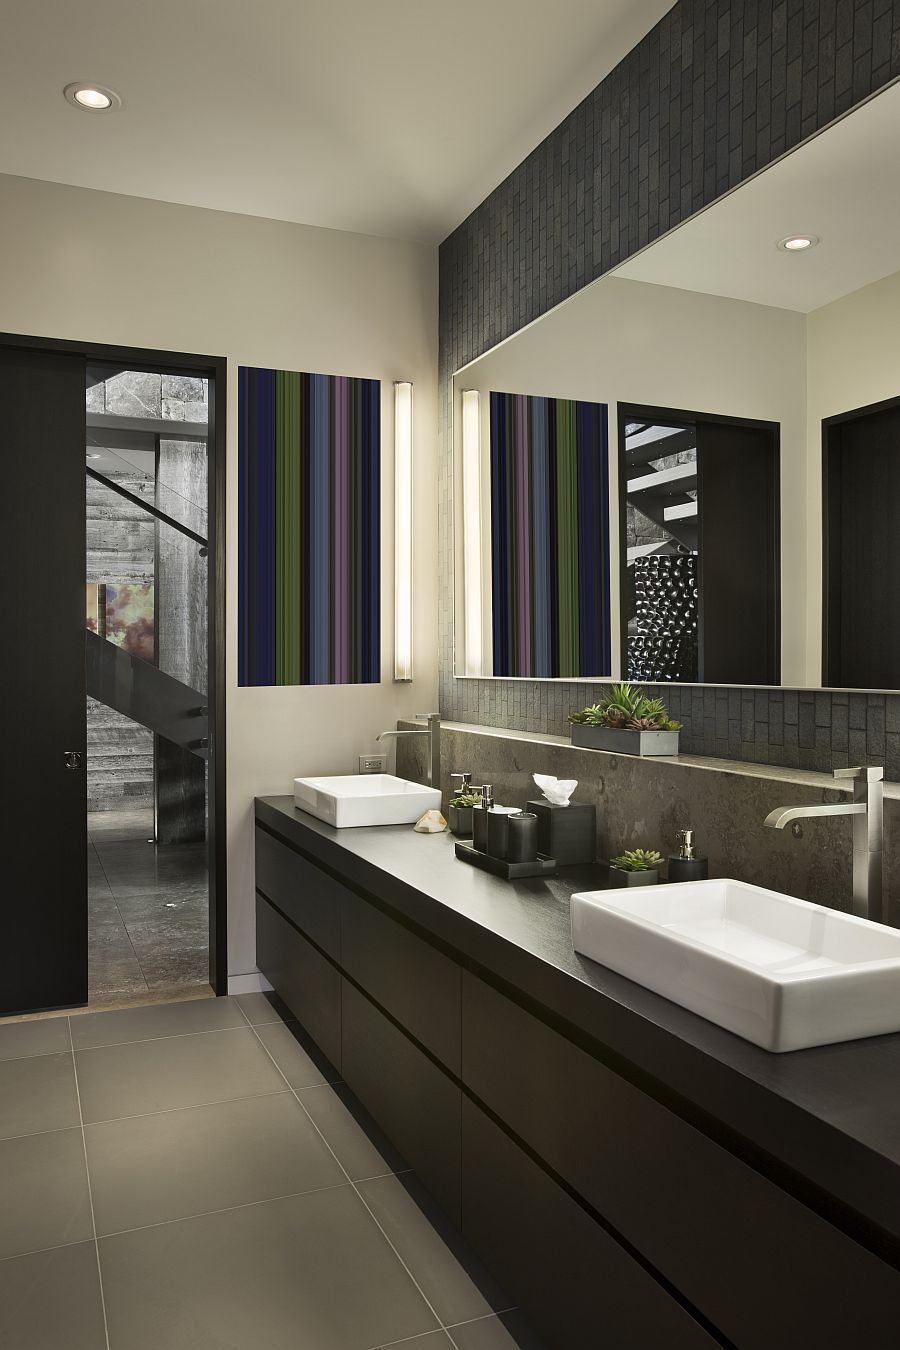 Contemporary guest bathroom at the stylish ski resort